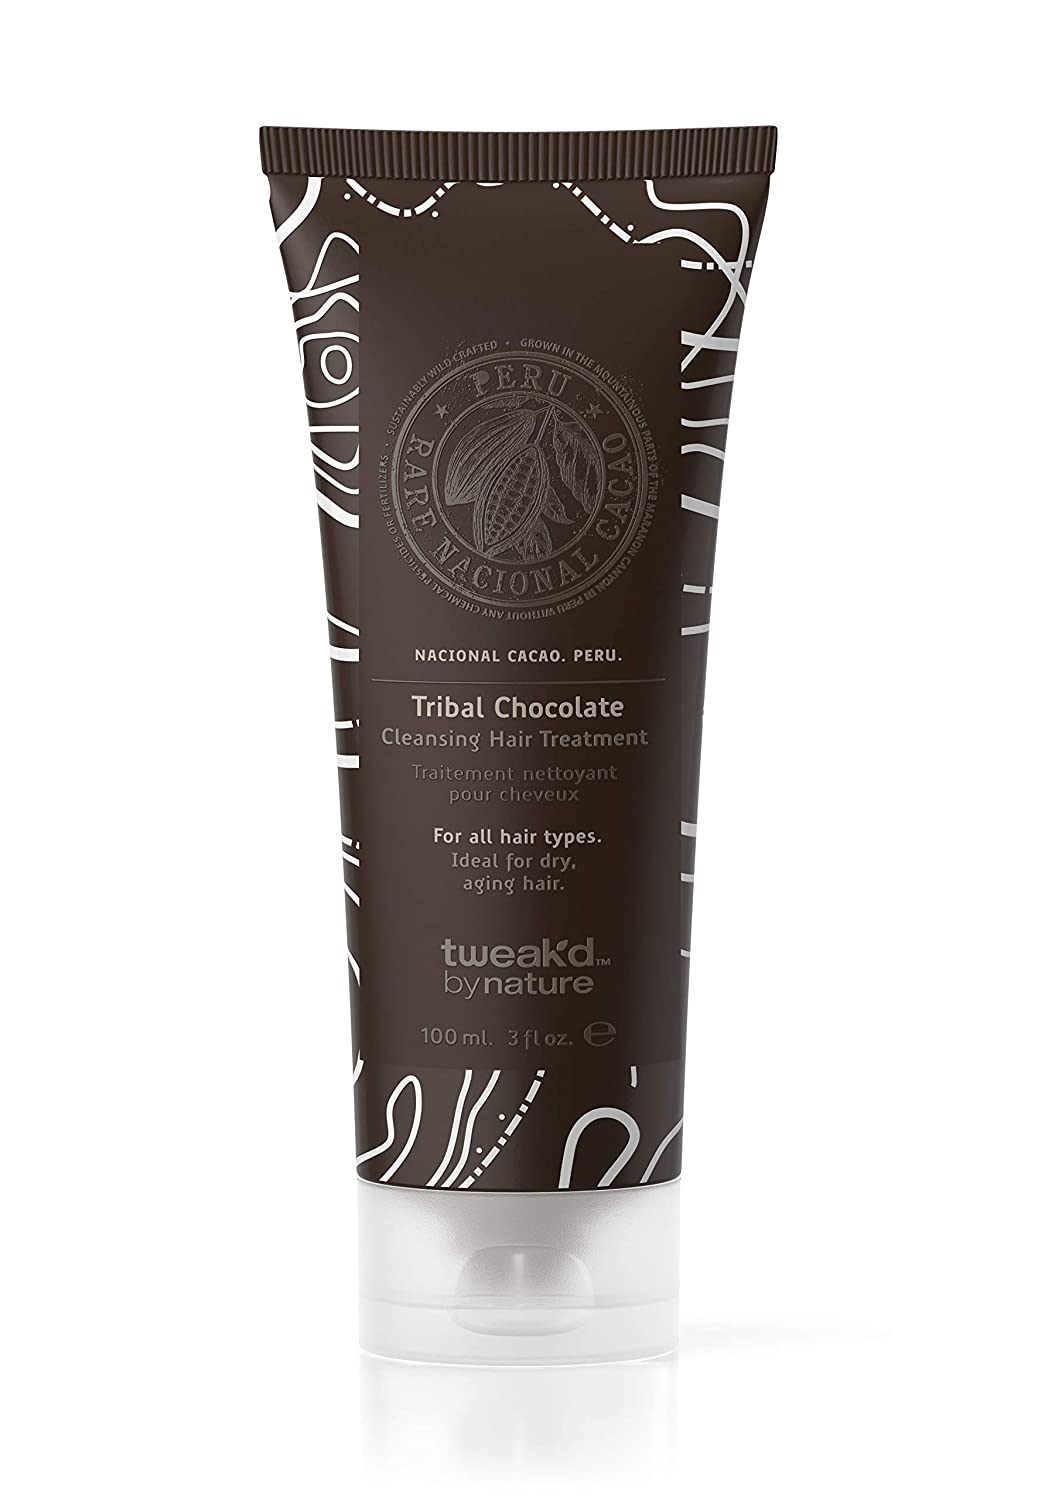 Tweak-d By Nature Cleansing Hair Treatment 3 fl. oz. (Tribal Chocolate)